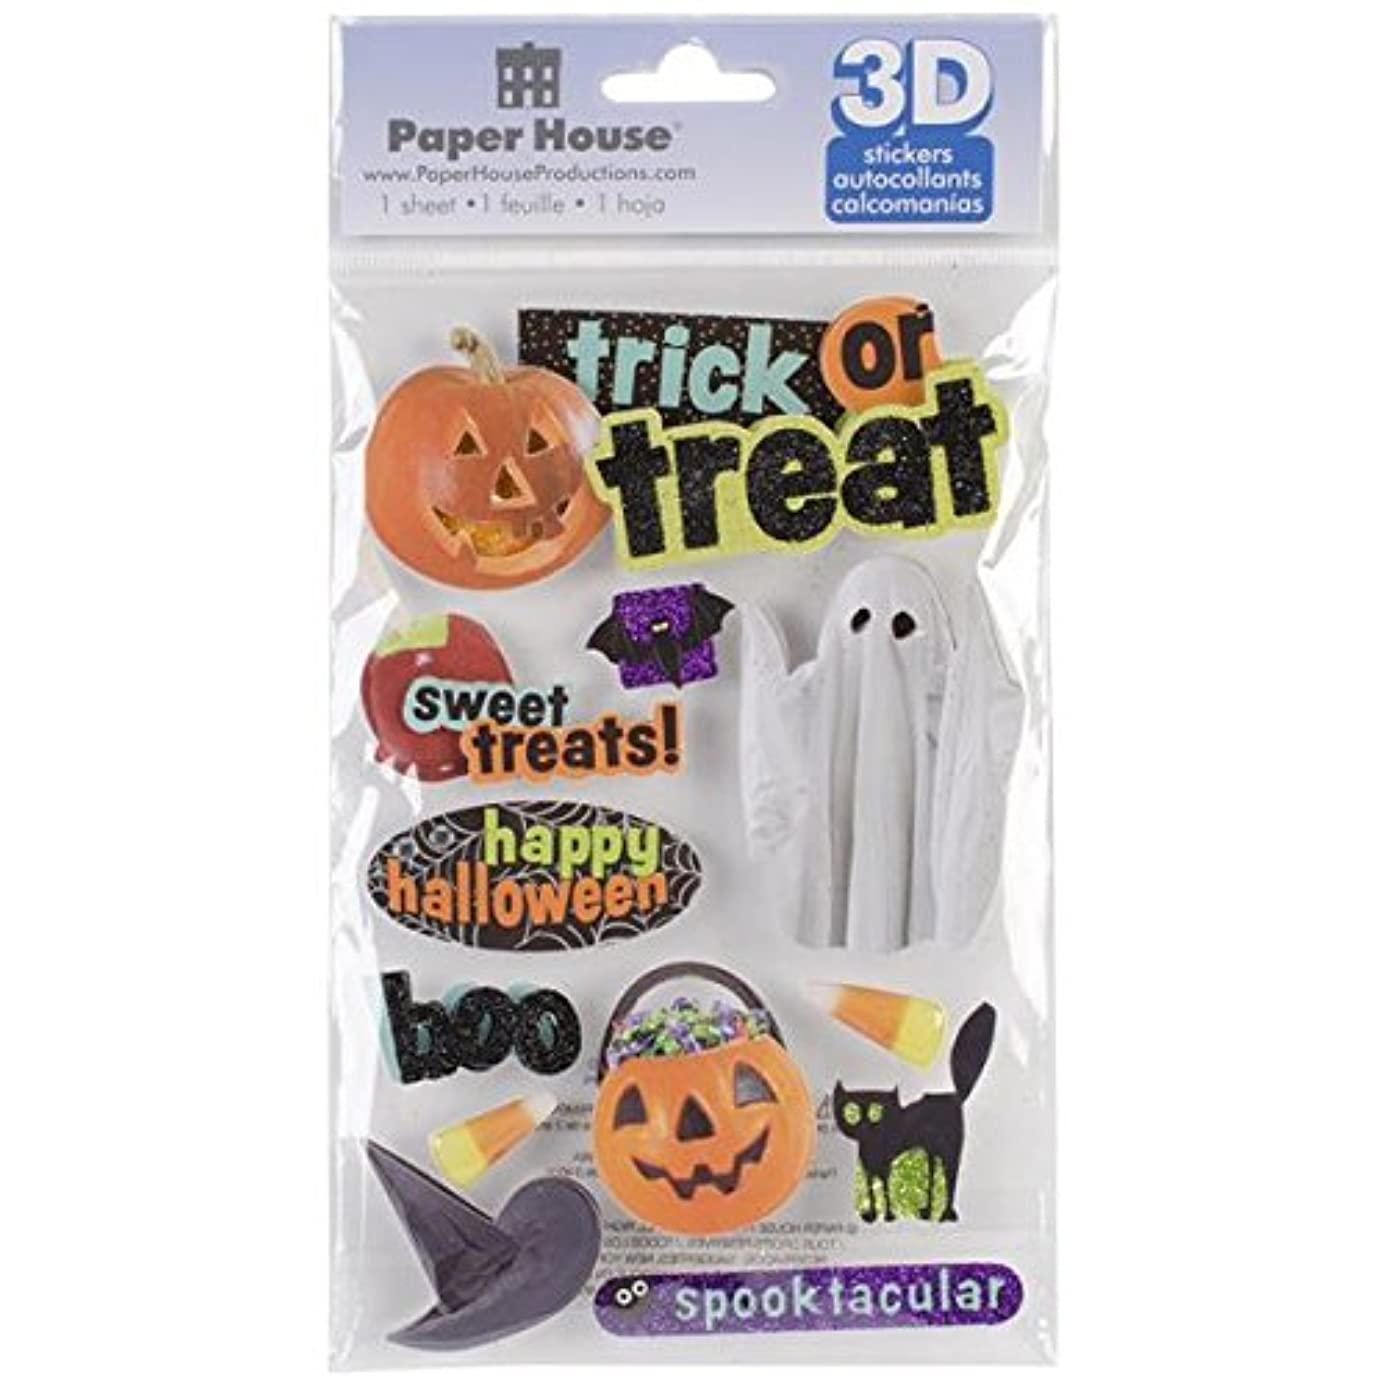 Paper House Productions STDM-0101E 3D Sticker, Trick Or Treat dzdcqj2869